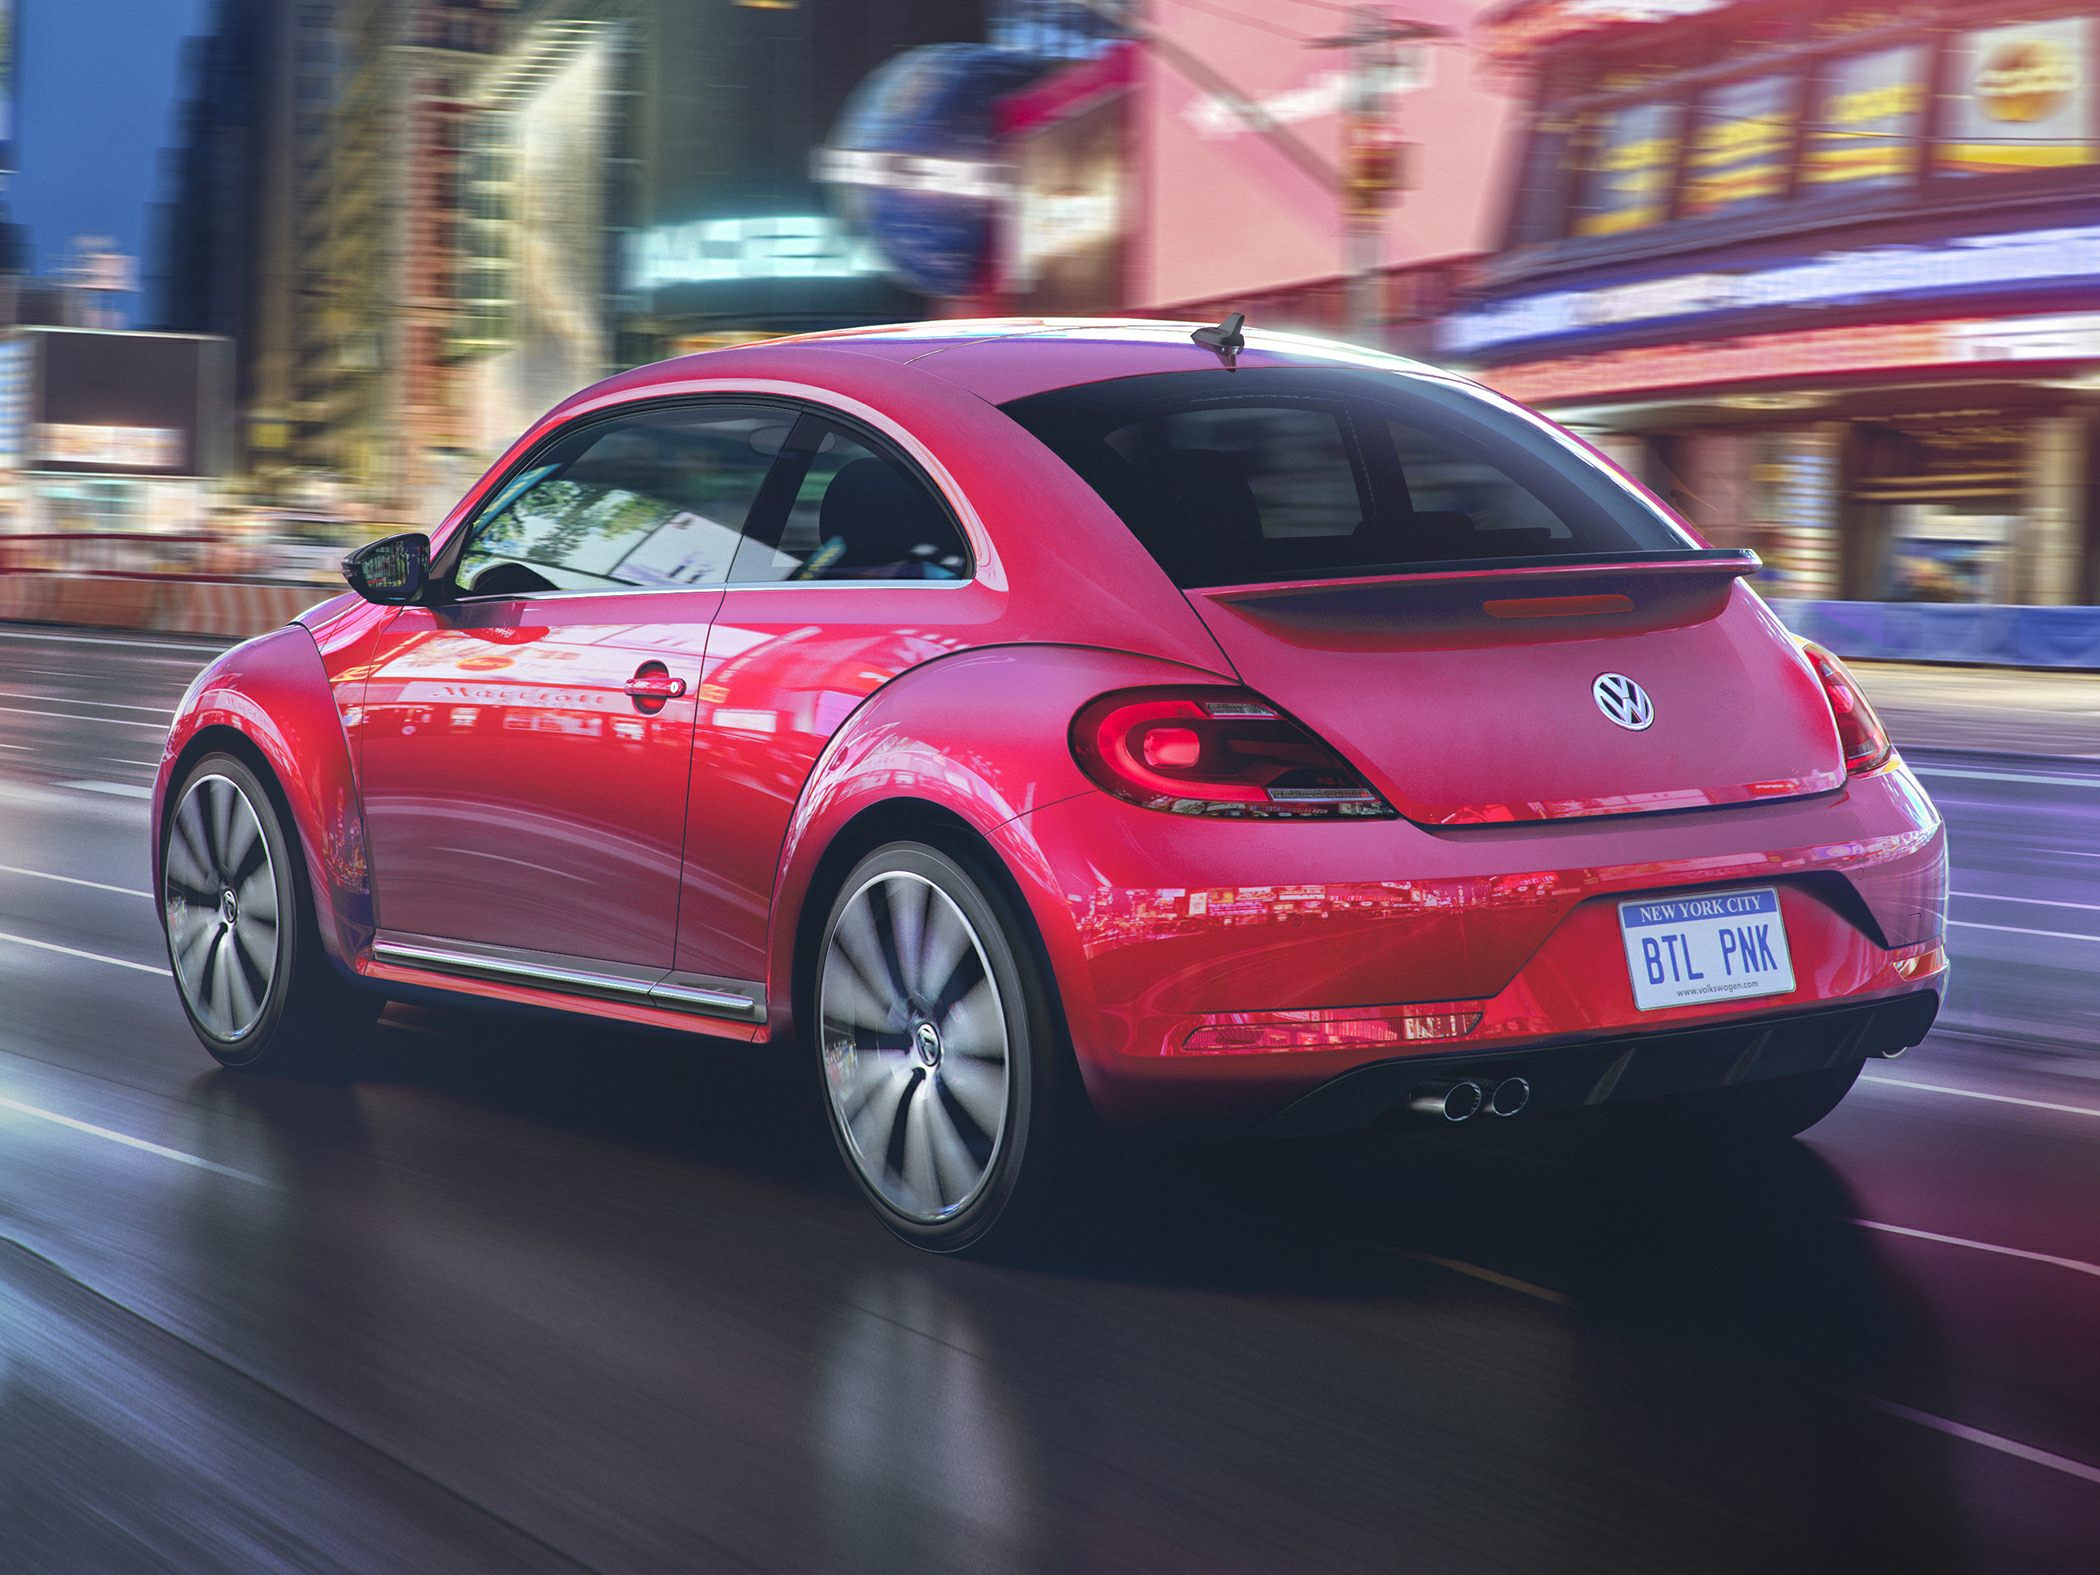 2017 volkswagen beetle deals prices incentives leases overview carsdirect. Black Bedroom Furniture Sets. Home Design Ideas